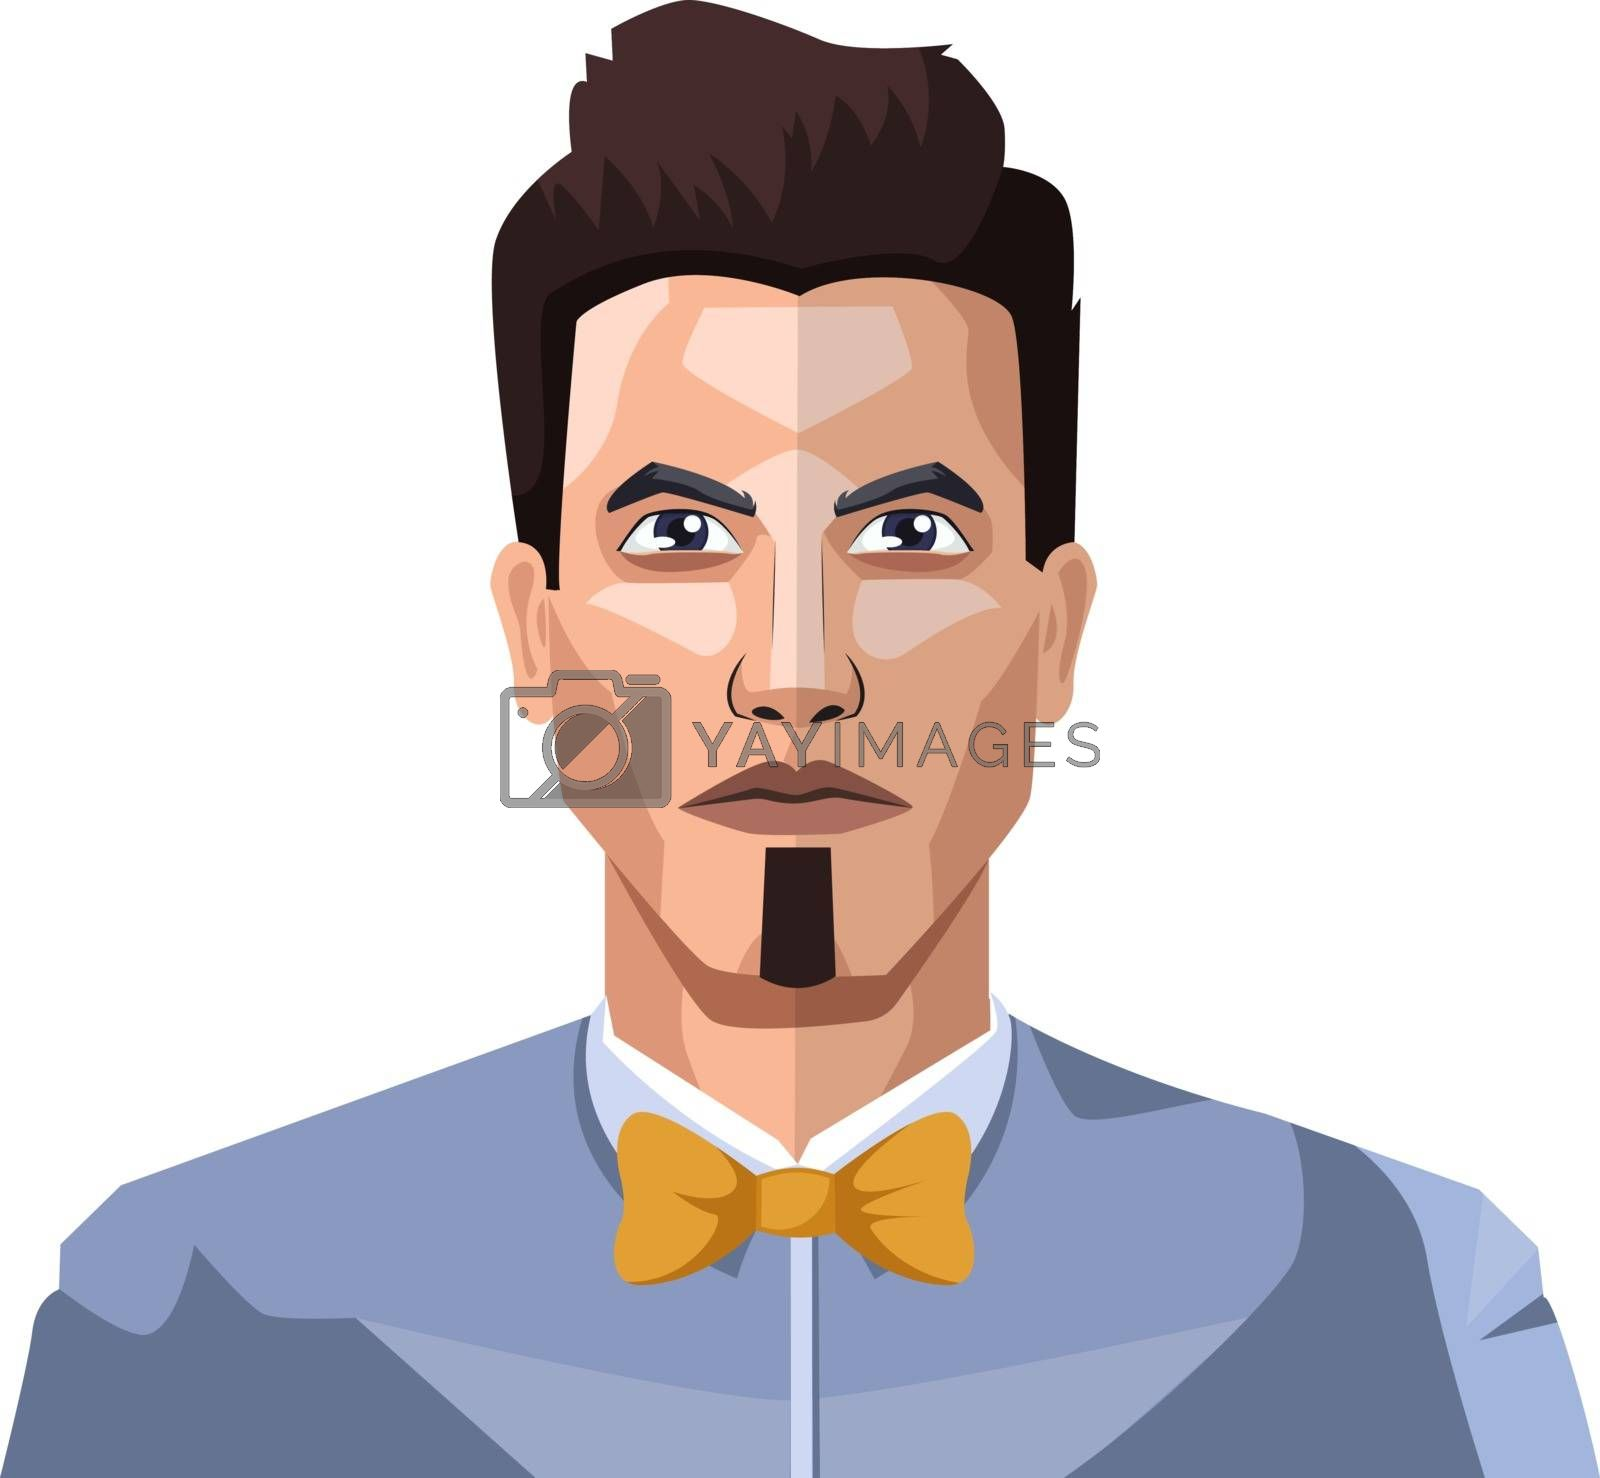 Royalty free image of Guy with short hair and small beard illustration vector on white by Morphart